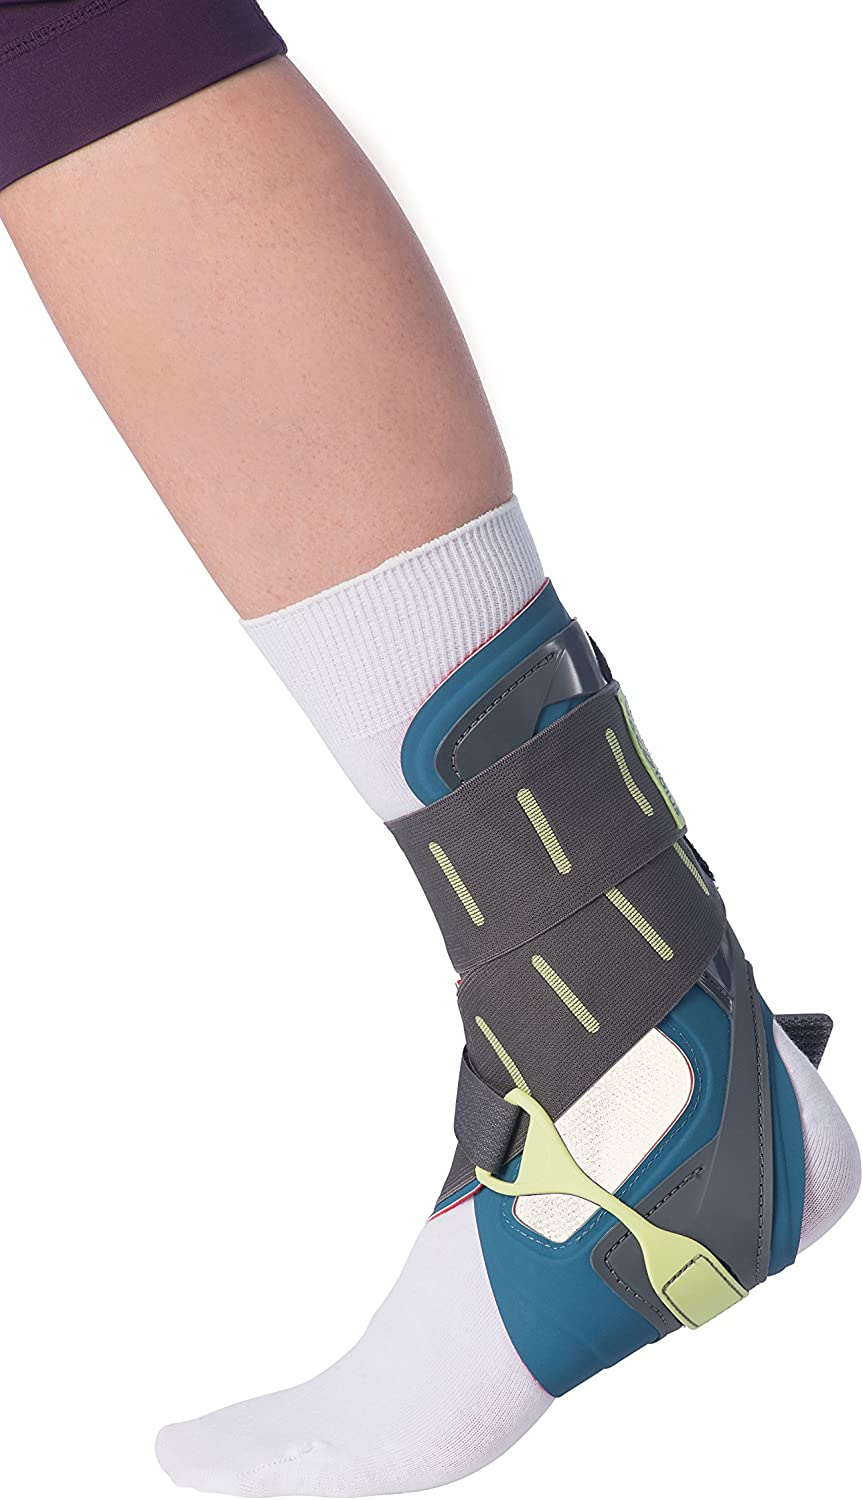 OPED VACOtalus Ankle Brace for Achilles sprains Suppo Direct store Injuries Sale price